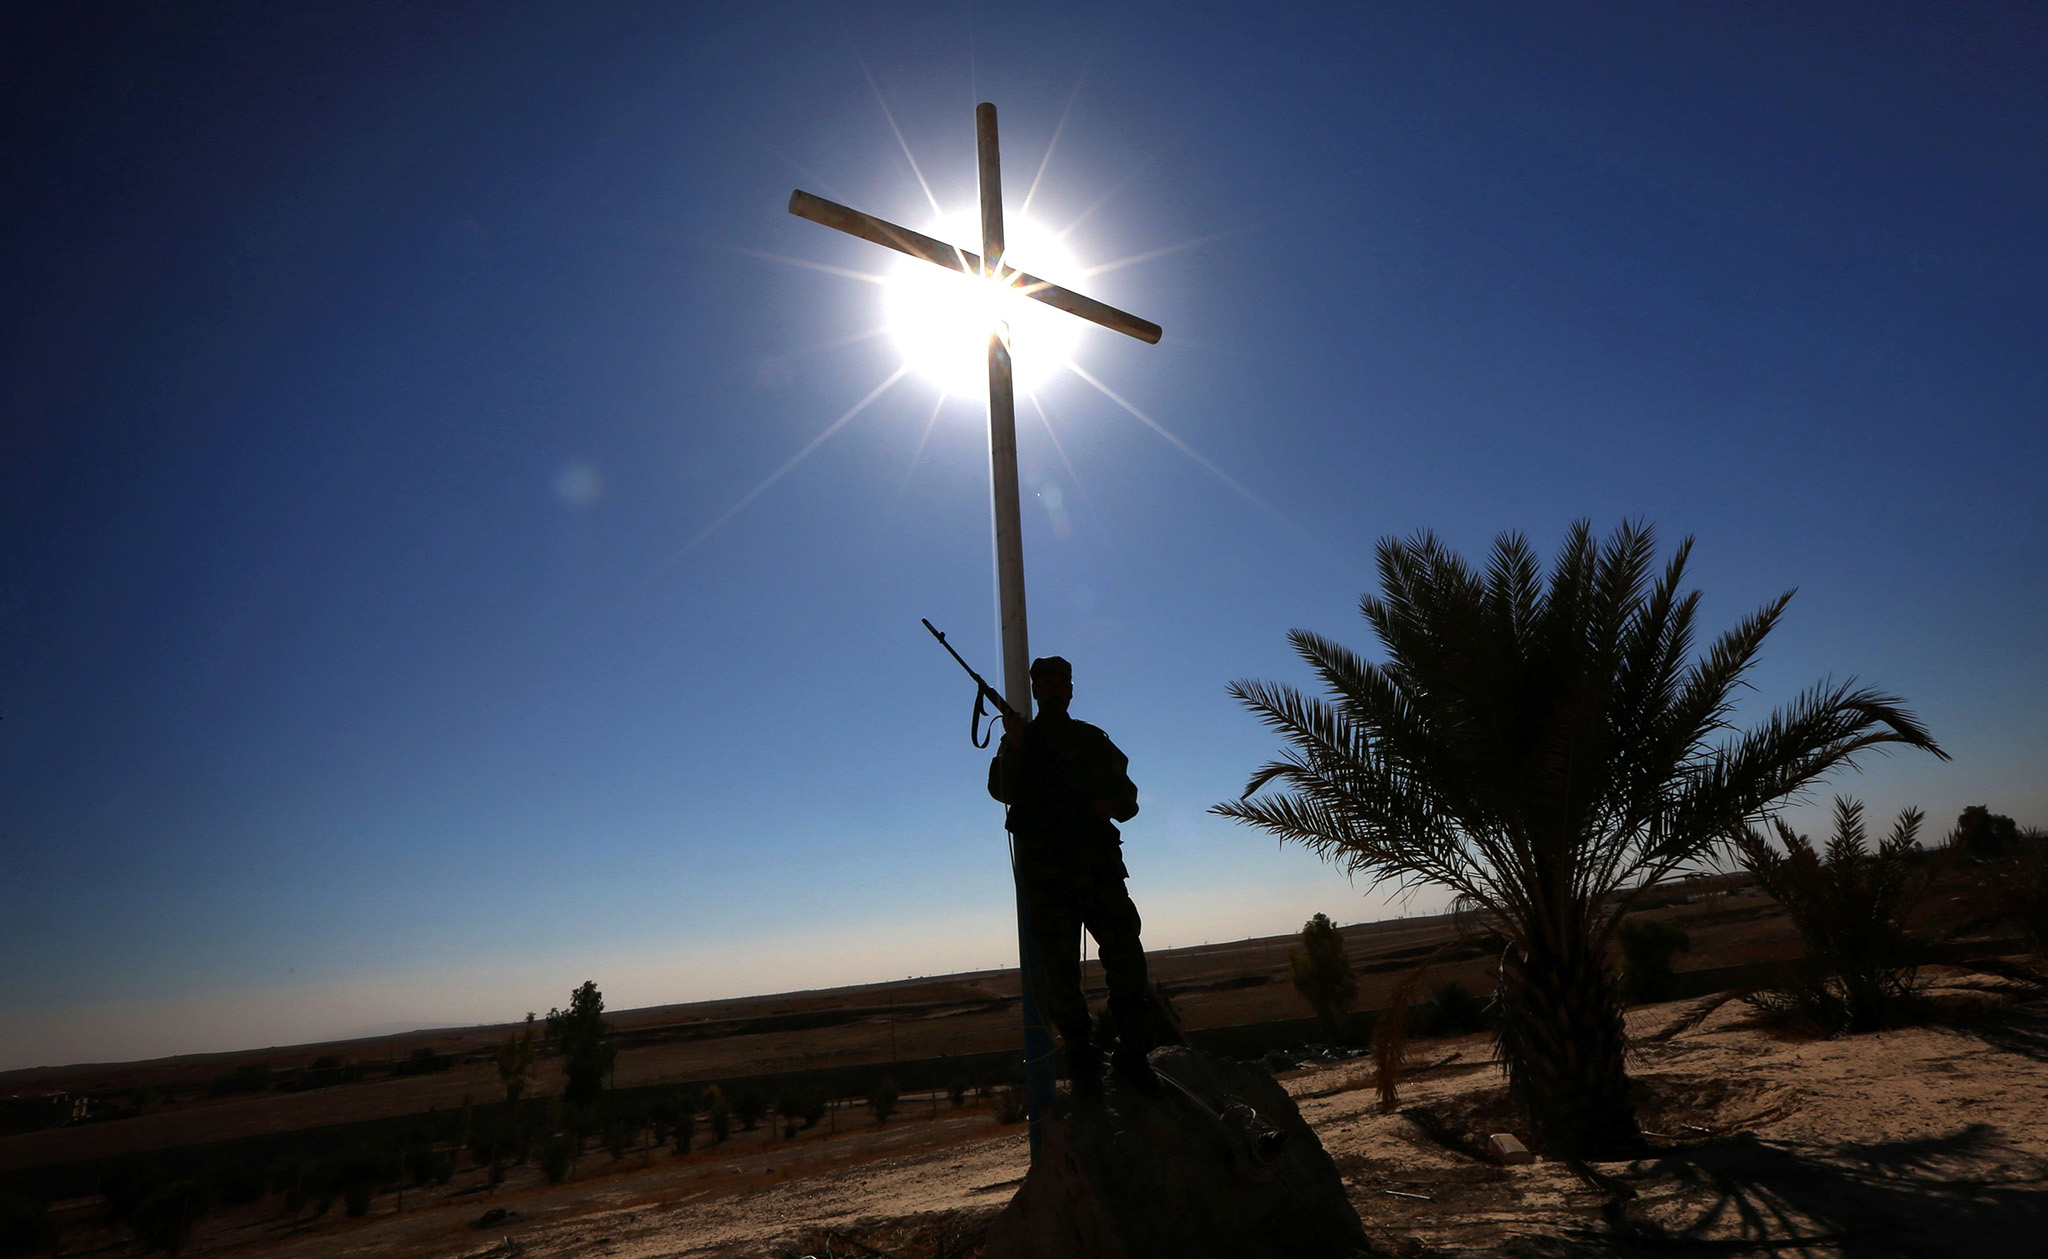 A member of the Iraqi Christian forces Kataeb Babylon (Babylon Brigades) stands guard beneath a cross at the Mar Benham Syriac Catholic monastery in the town of Khidr Ilyas, southeast of Mosul, on November 22, 2016. Iraqi fighters battling to oust the Islamic State group from Mosul captured the Catholic Mar Benham monastery on November 20, allowing its priests to return. Dating back to the fourth century AD, the monastery lies just 30 kilometres south of Iraq's second city which became a bastion of the jihadist group which swept across northern Iraq in 2014. / AFP PHOTO / SAFIN HAMEDSAFIN HAMED/AFP/Getty Images